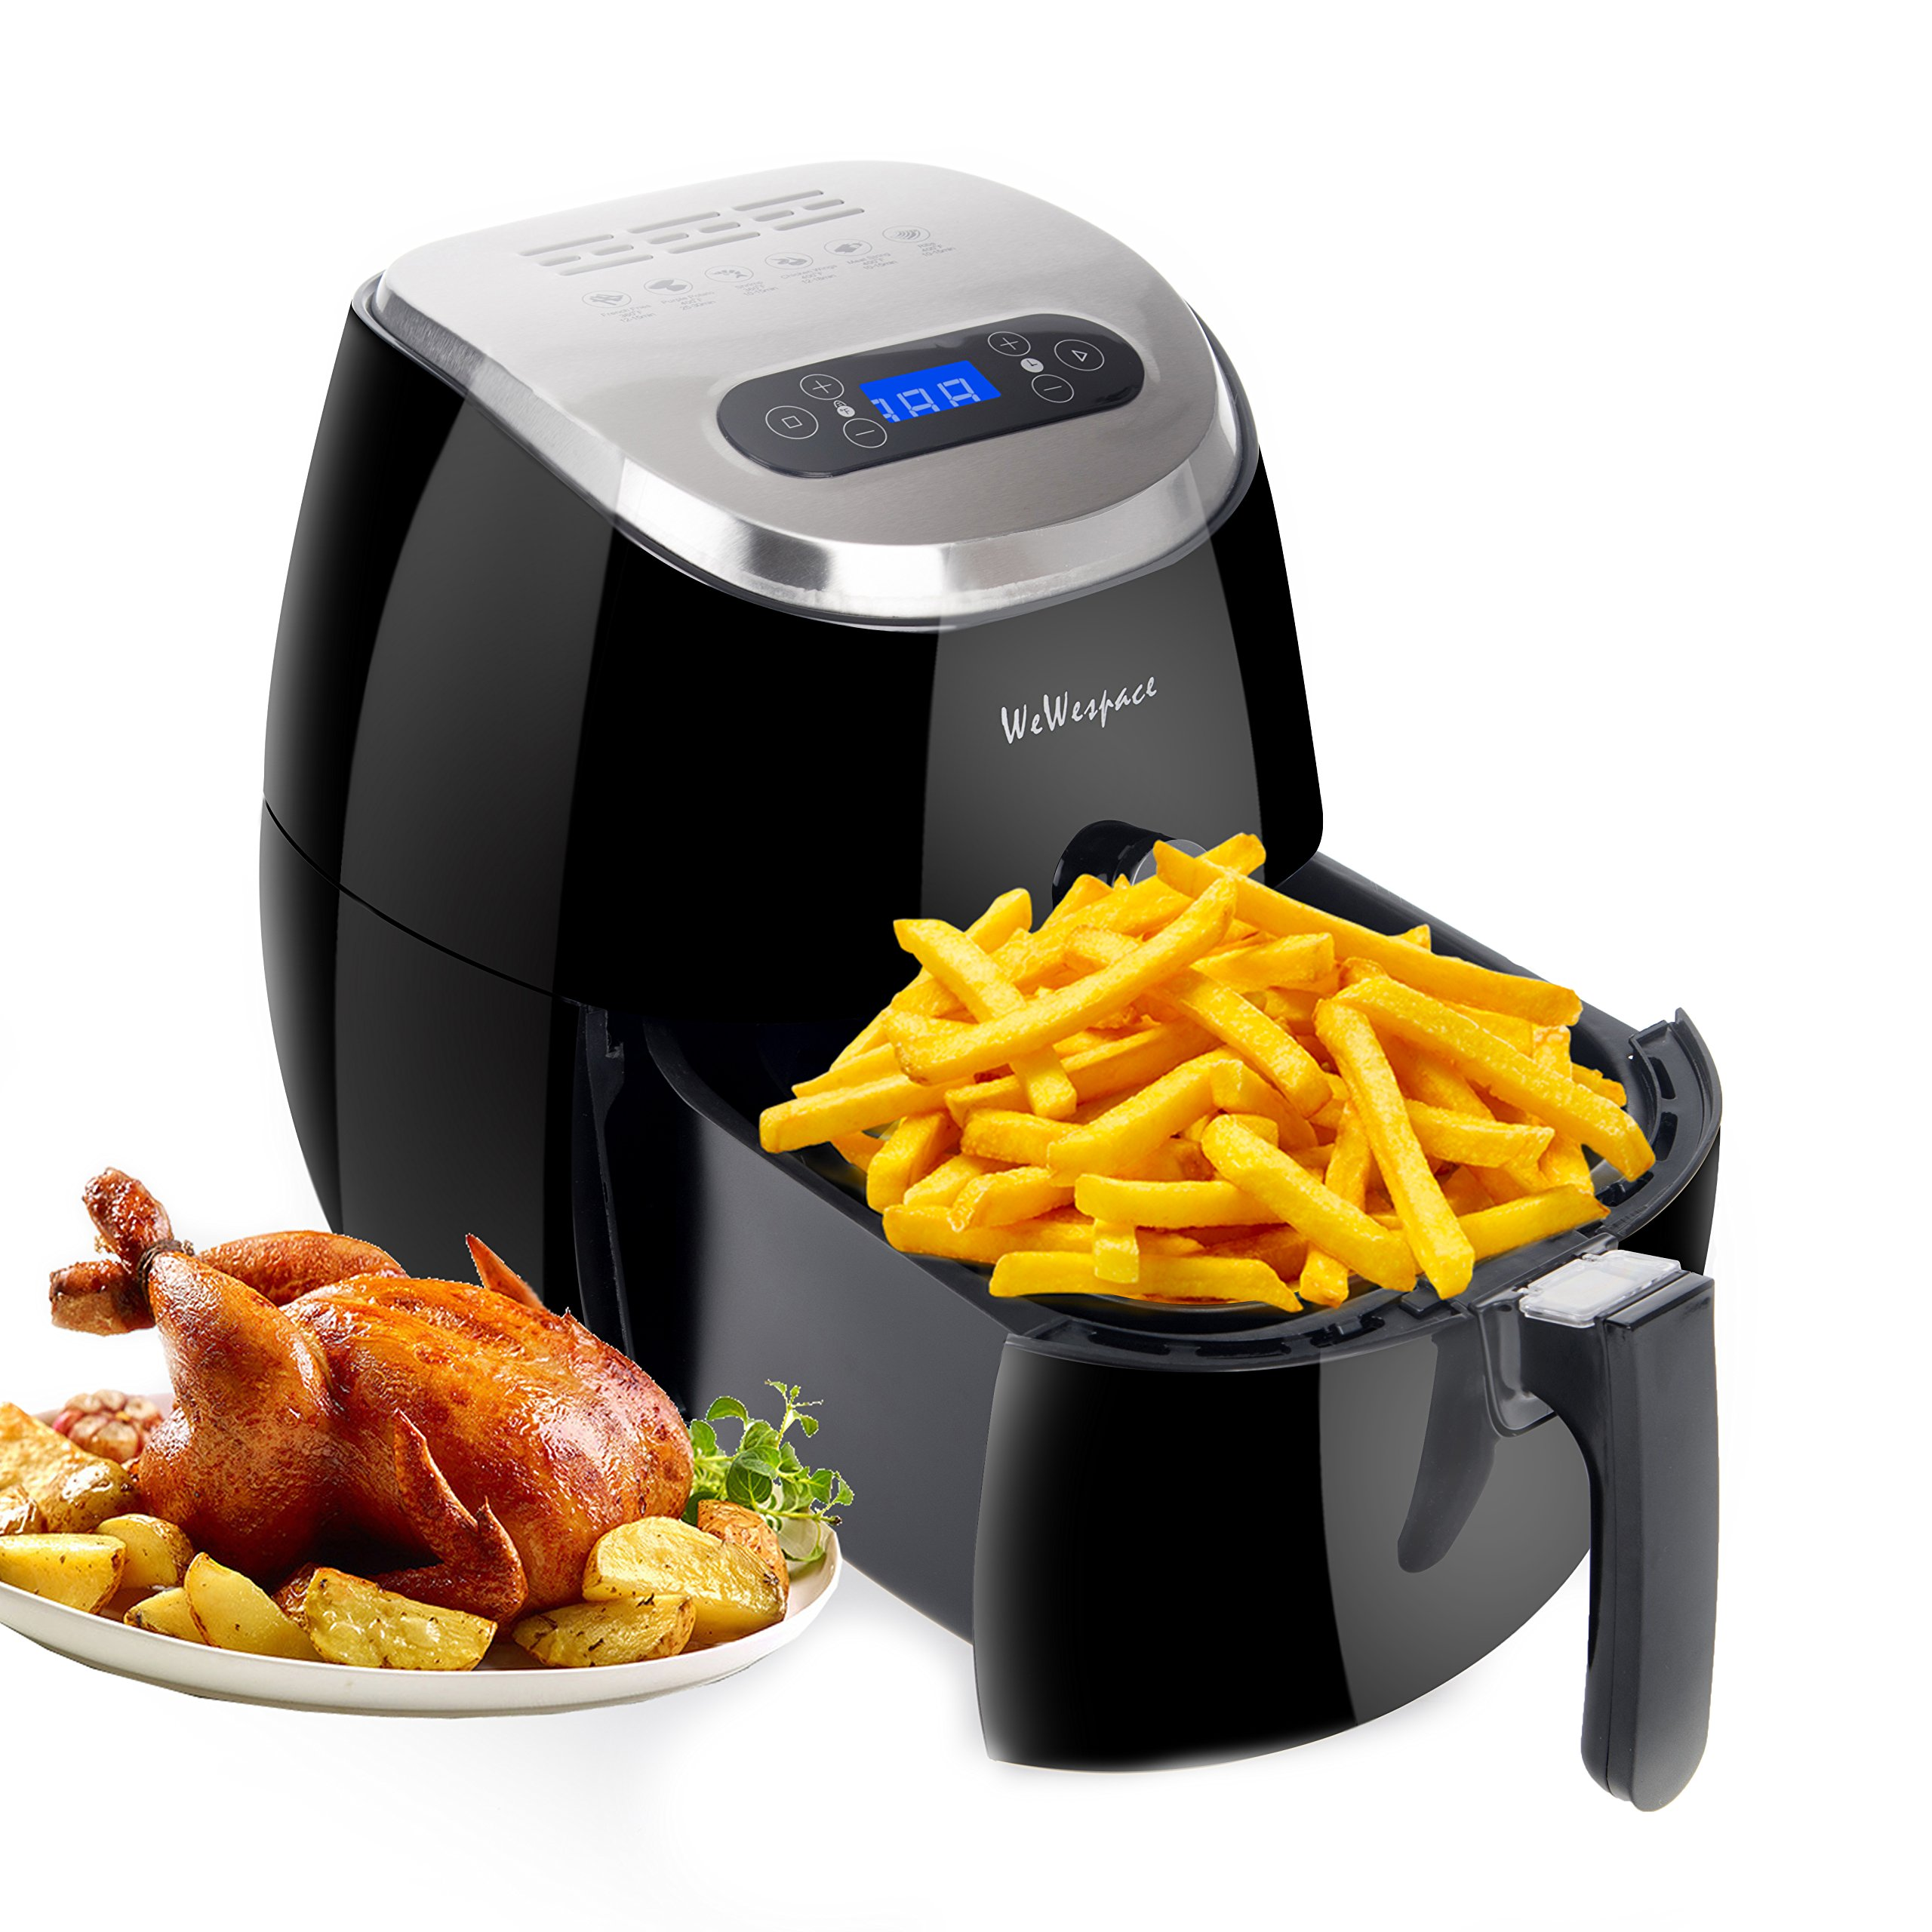 WEWespace Deep Air Fryer 3.7QT, 1350W - Comes with Recipes CookBook - Easy-to-clean - Dishwasher Safe Digital LED Touch Screen - Auto Shut off and Timer